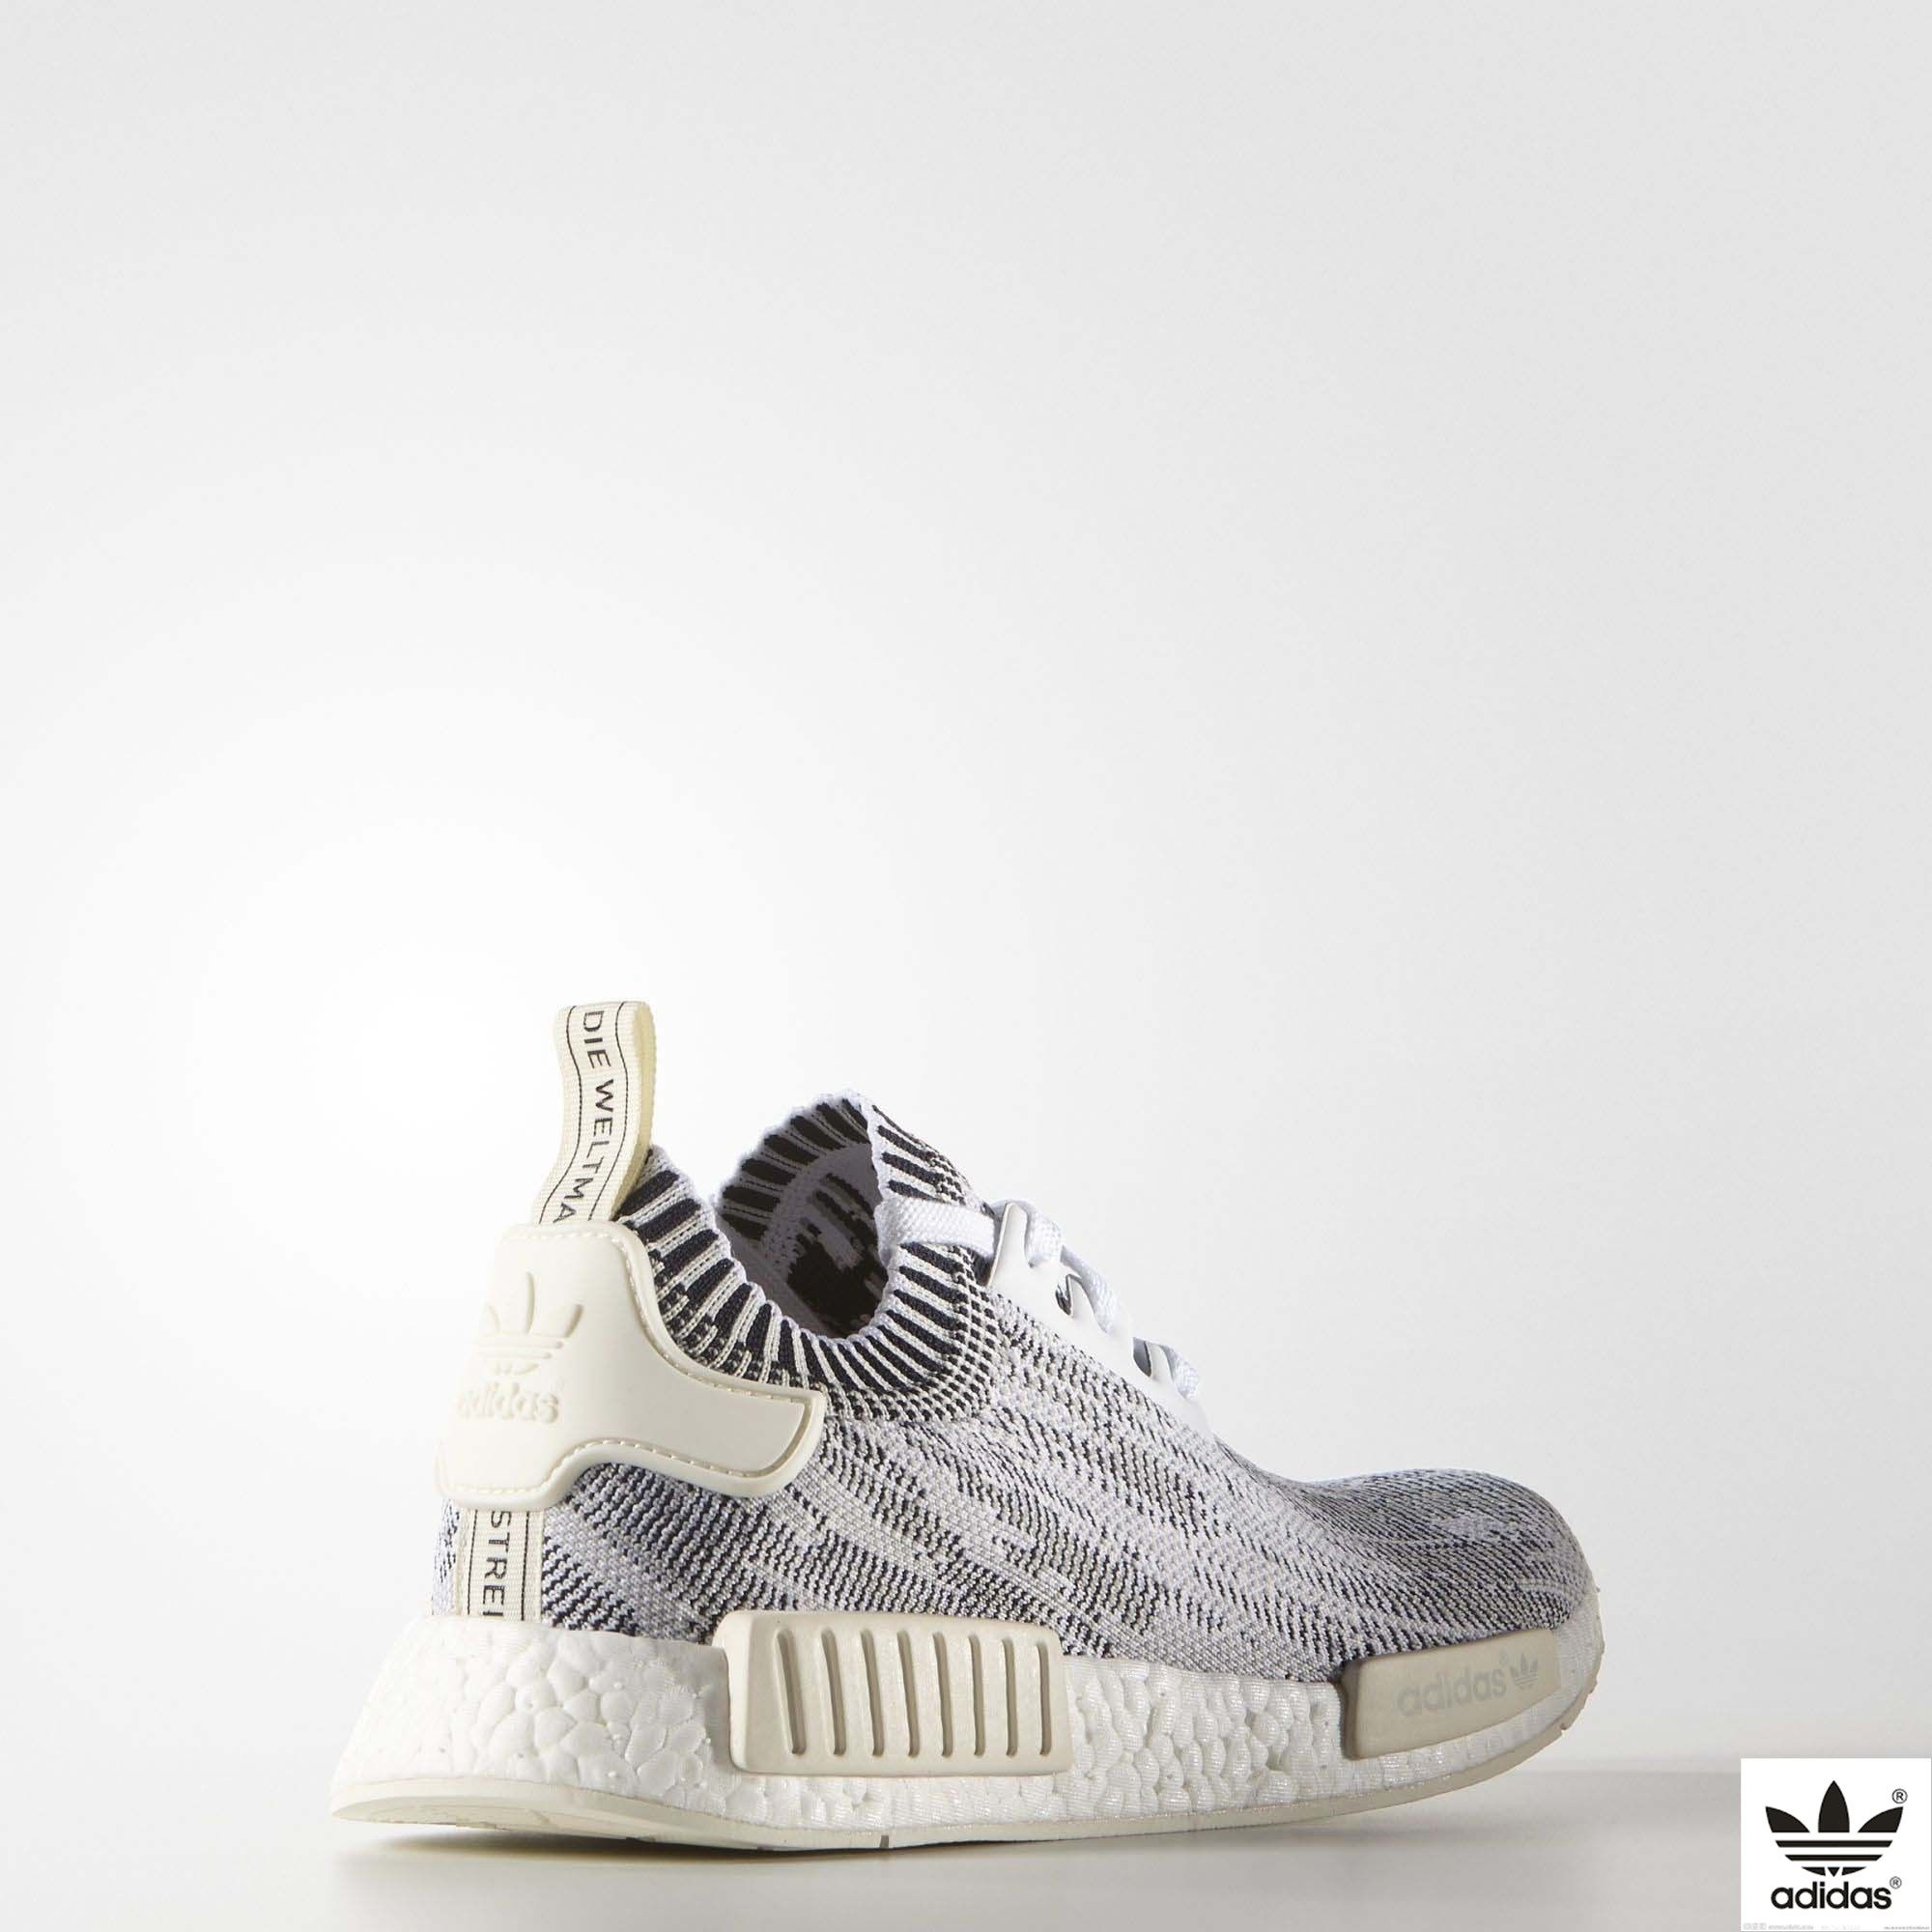 223628f53 Adidas NMD R1 Primeknit White Camo - Mens Legend BlueClear OnyxWhite1 being  unfaithful limited offer